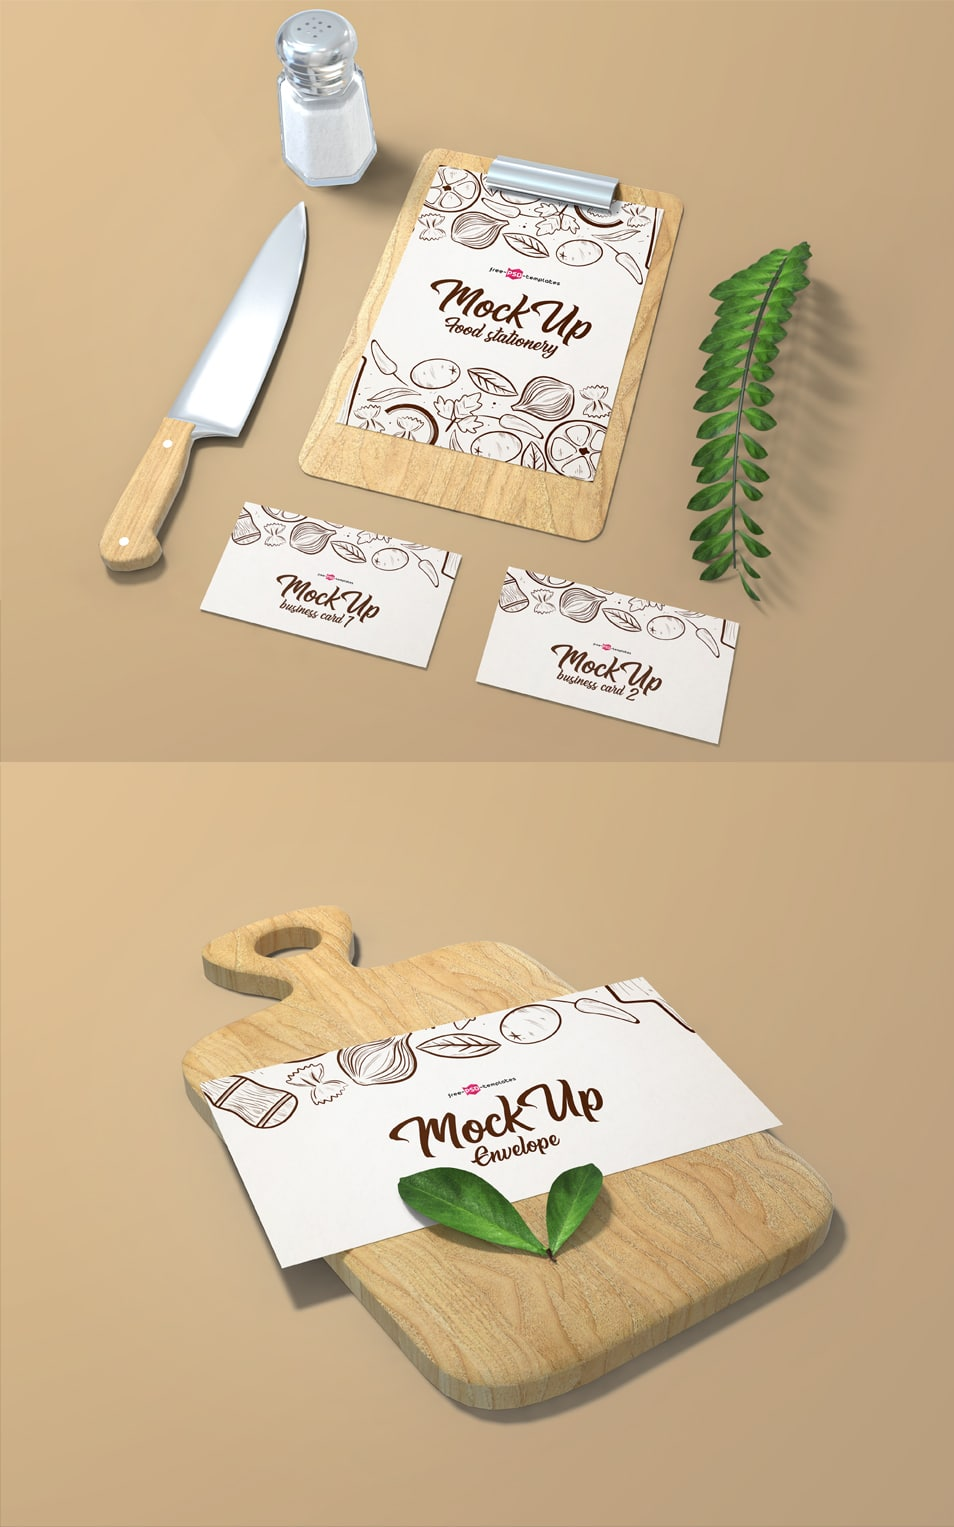 2 Free Food Stationery Mock-ups in PSD